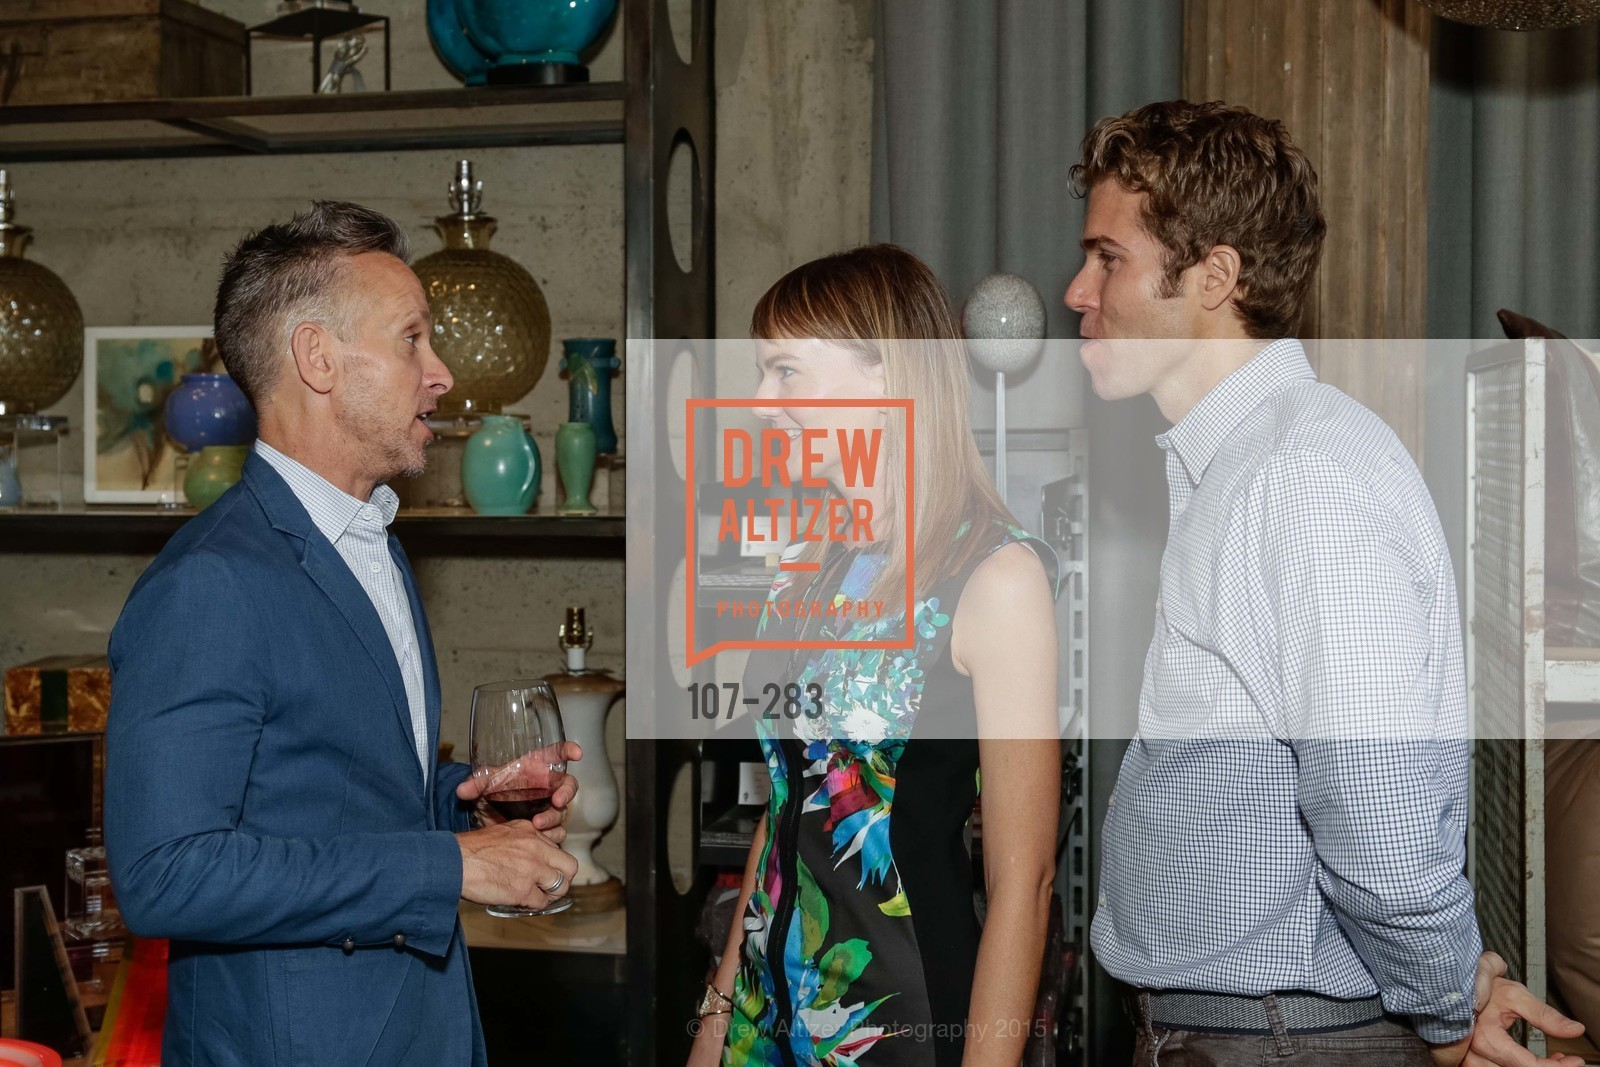 Jay Jeffers, Ginger Coy, Brad Coy, Jay Jeffers Host Will Harlan, Jay Jeffers CAVALIER. 1035 Post Street, San Francisco 94109, September 10th, 2015,Drew Altizer, Drew Altizer Photography, full-service agency, private events, San Francisco photographer, photographer california